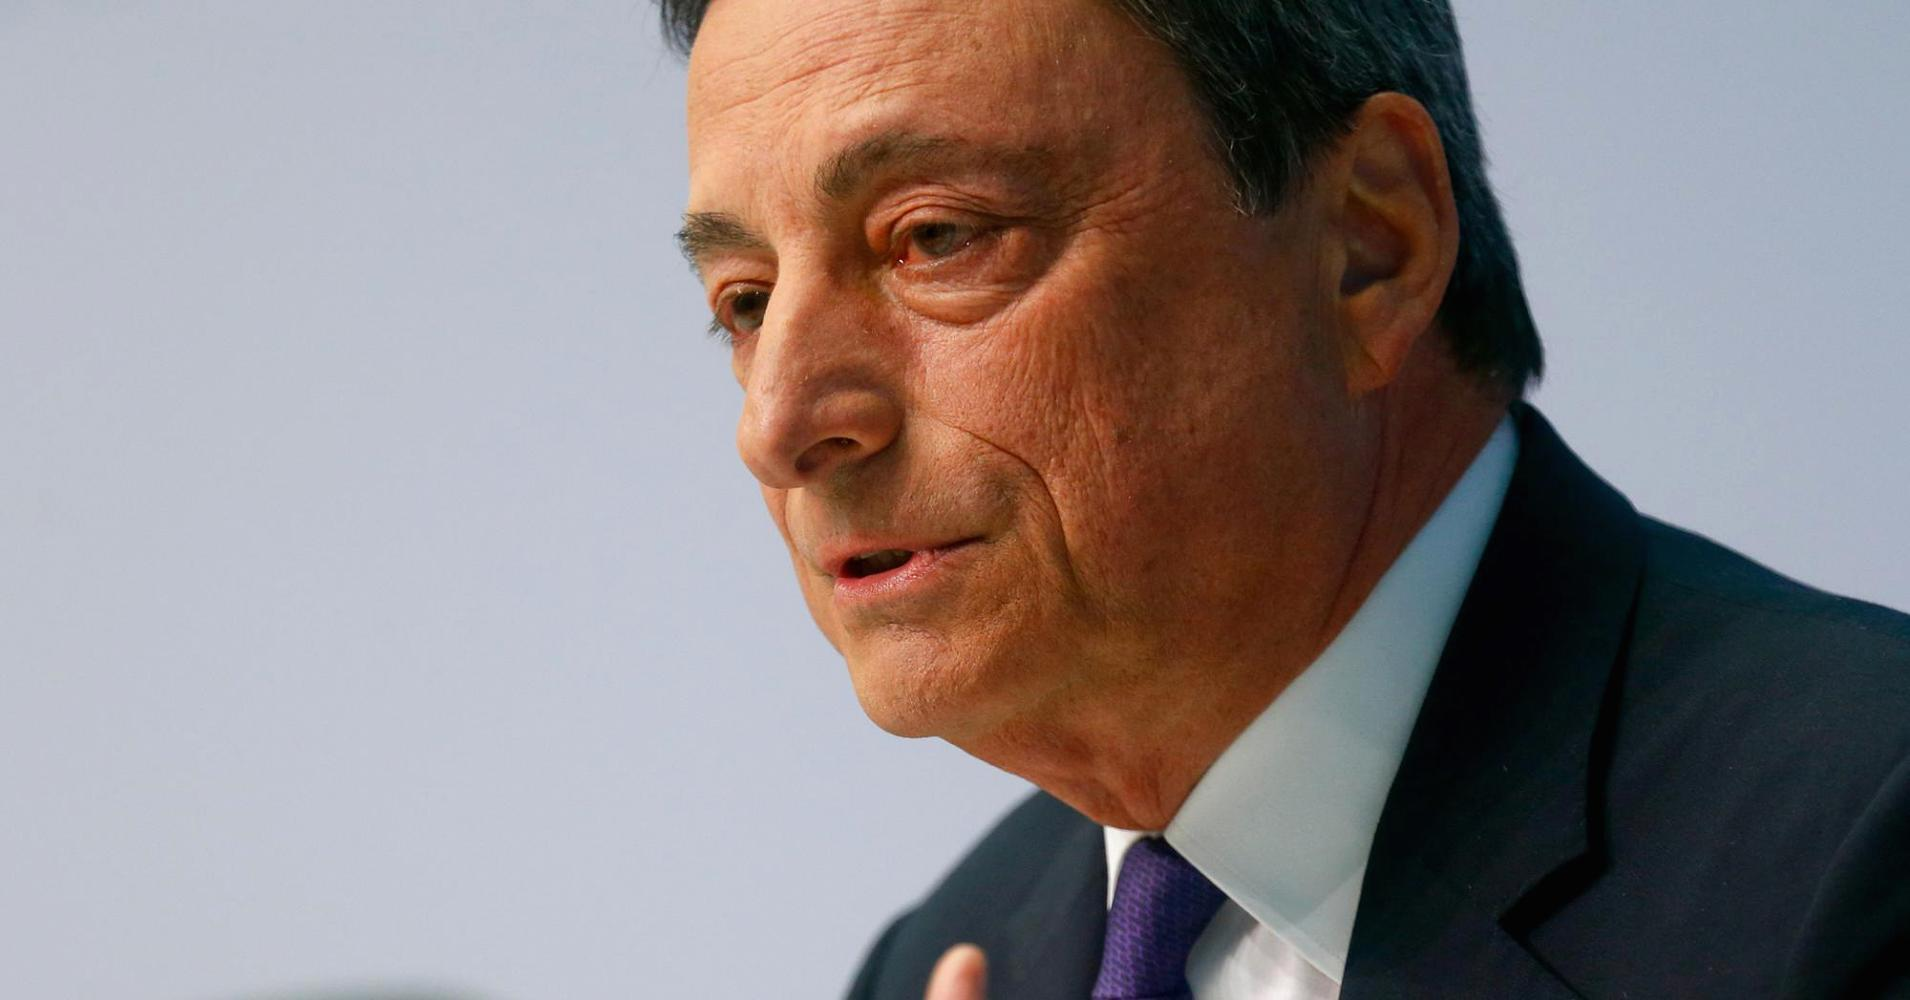 Euro zone outlook brightest 'in seven years': Draghi